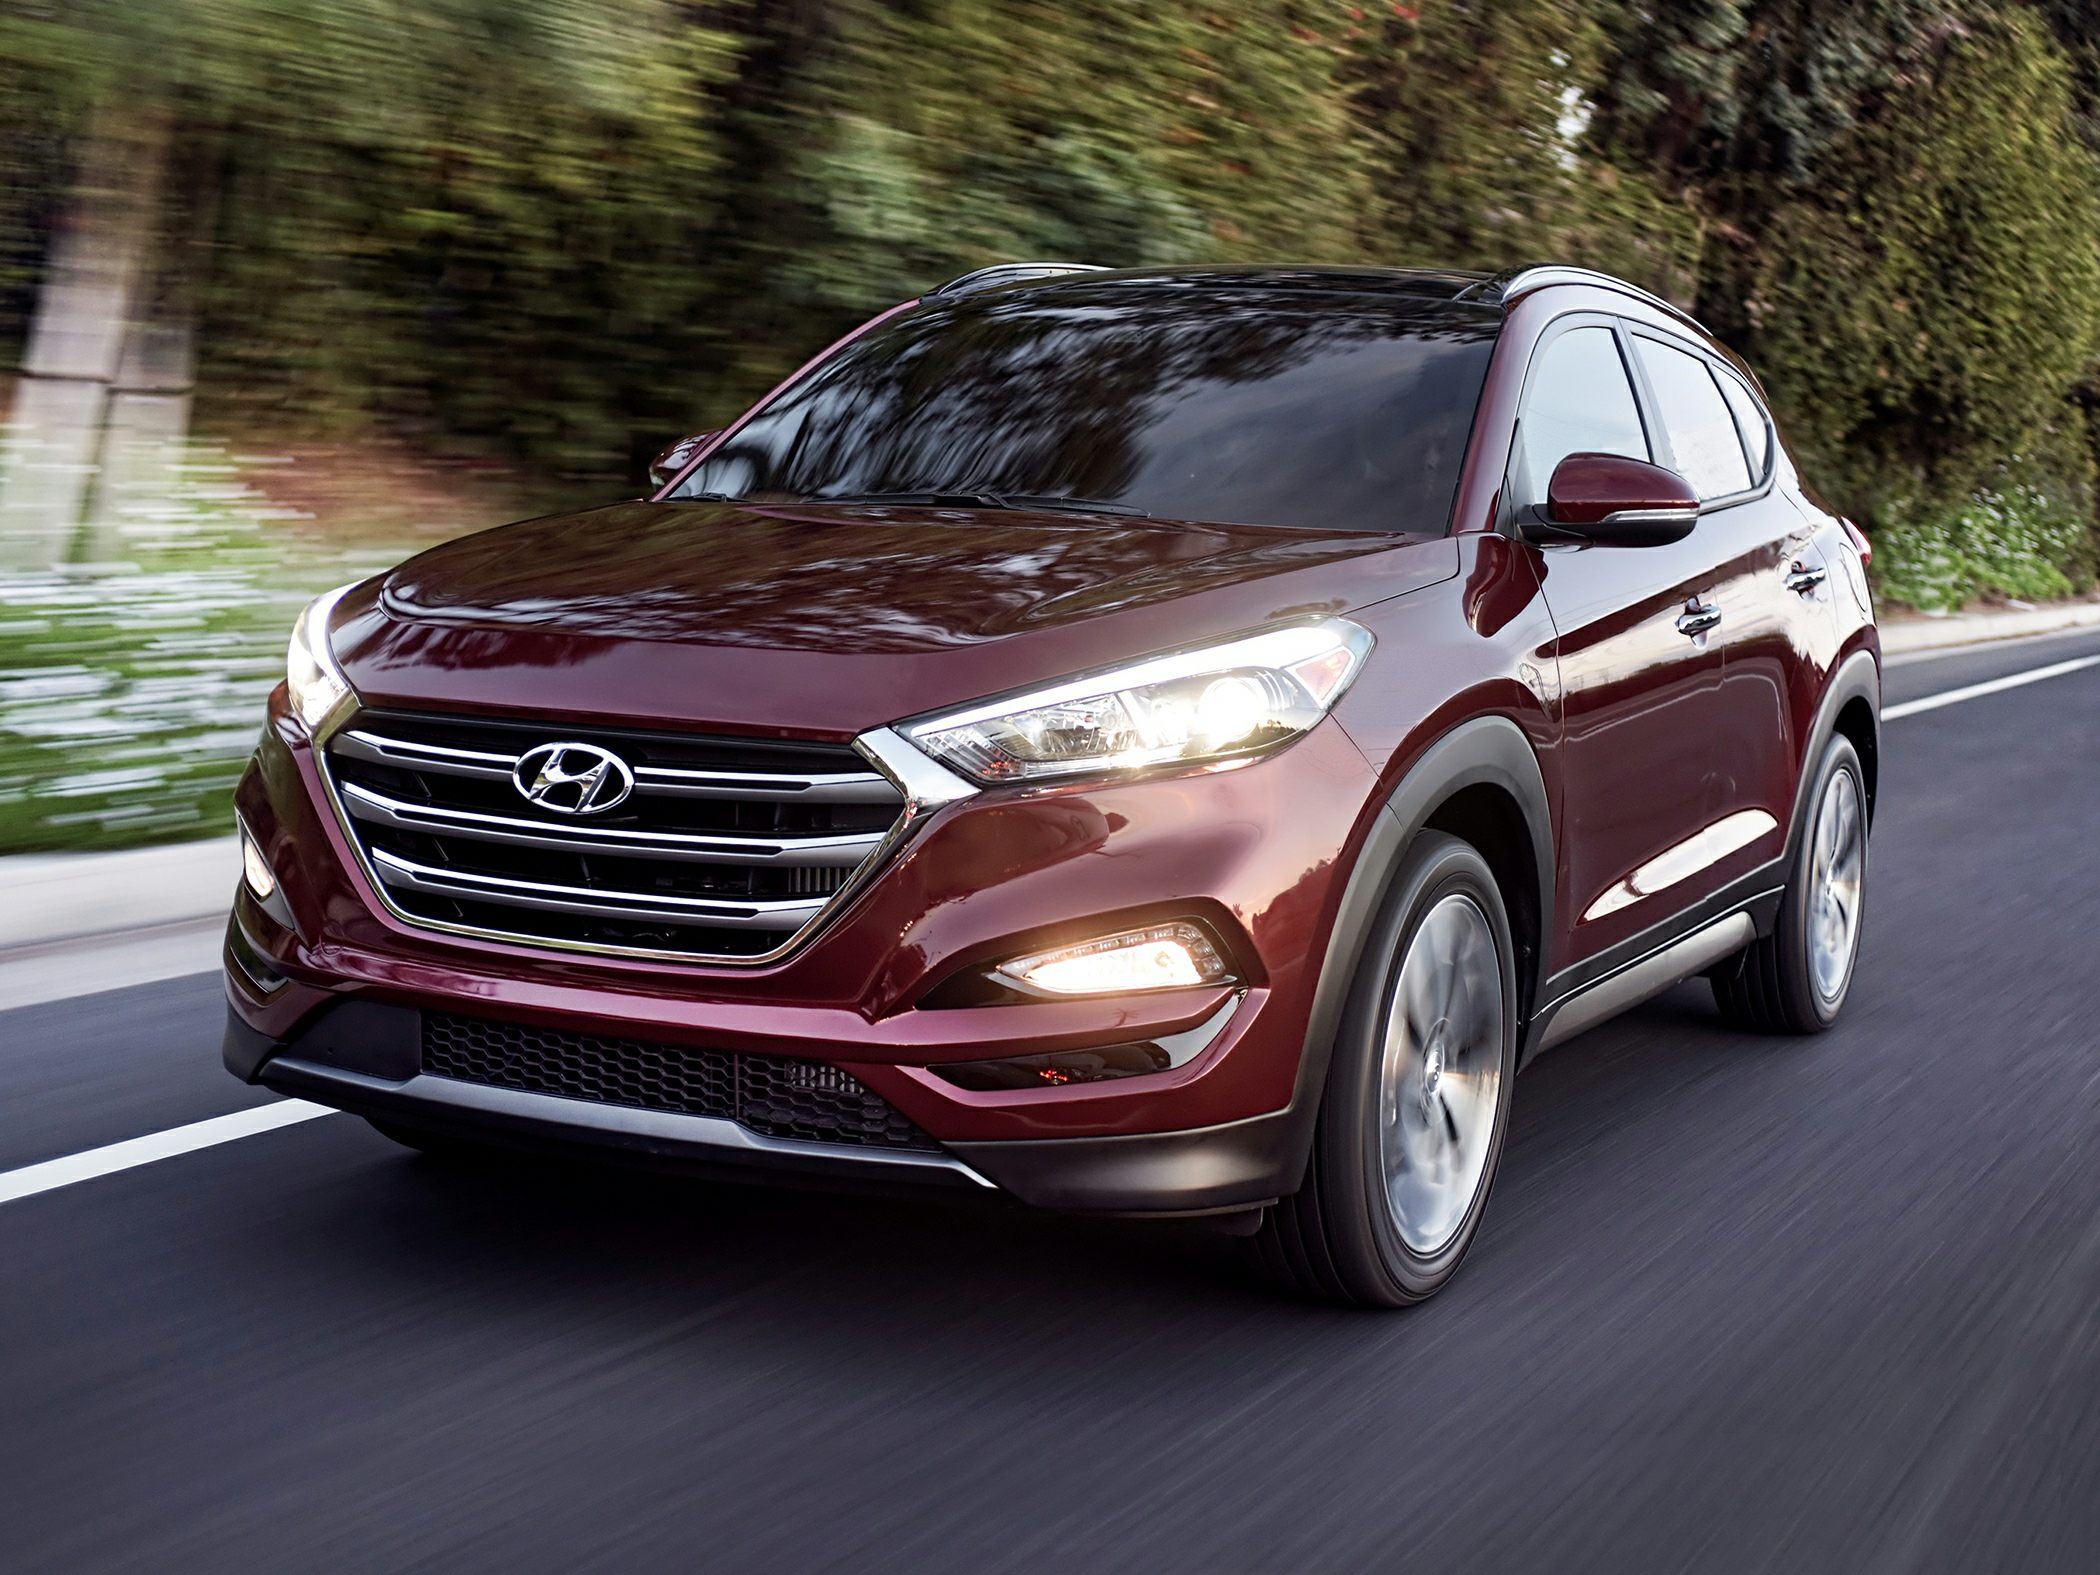 Hyundai Lease Deals >> Best Hyundai Deals Lease Offers July 2018 Carsdirect